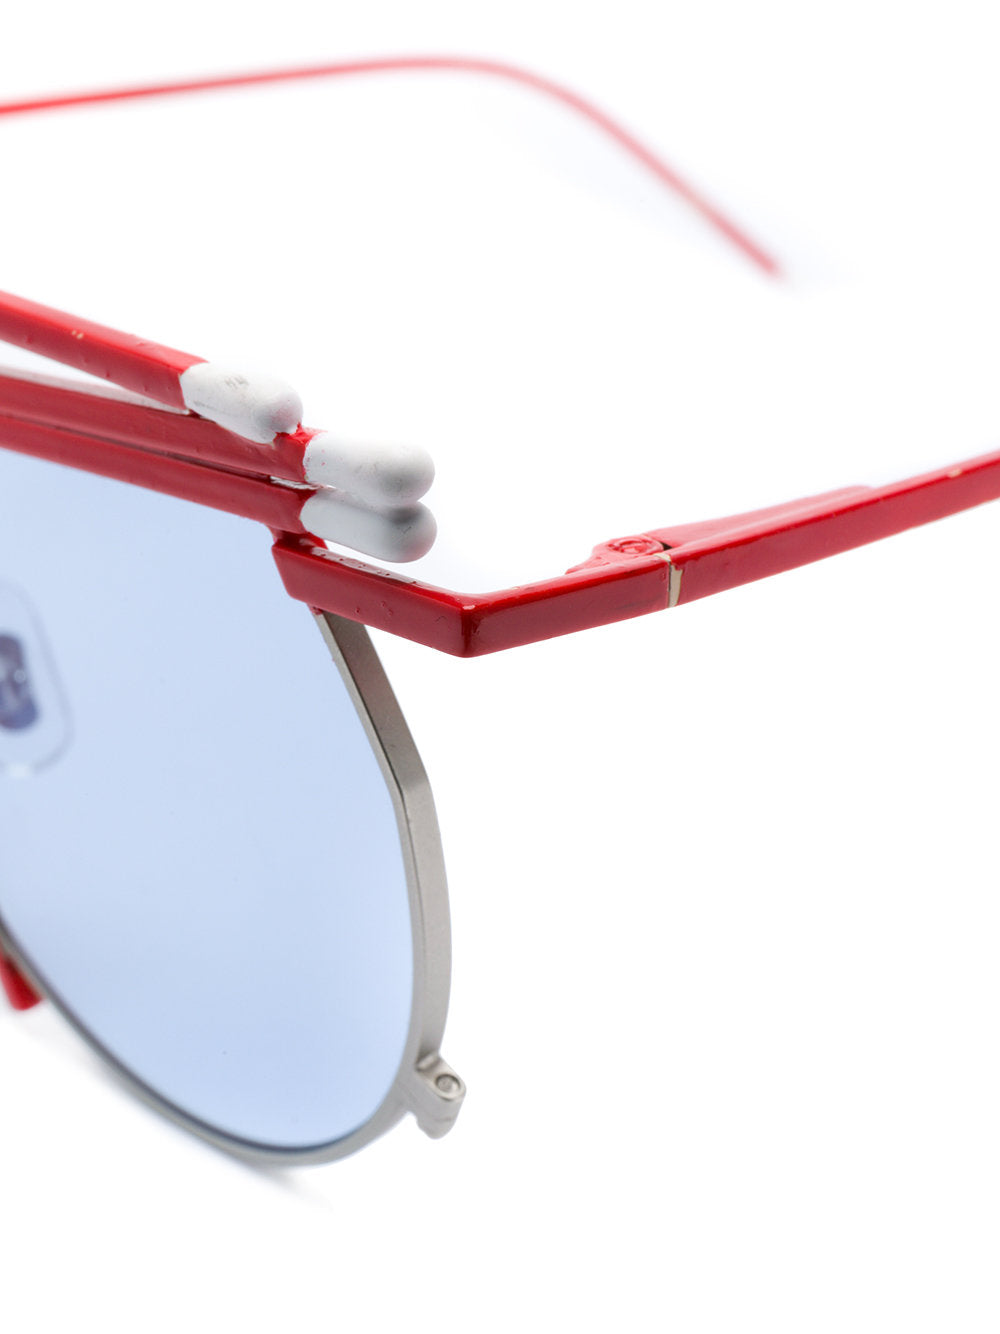 Henrik Vibskov x Gentle Monster red white match sunglasses - 3